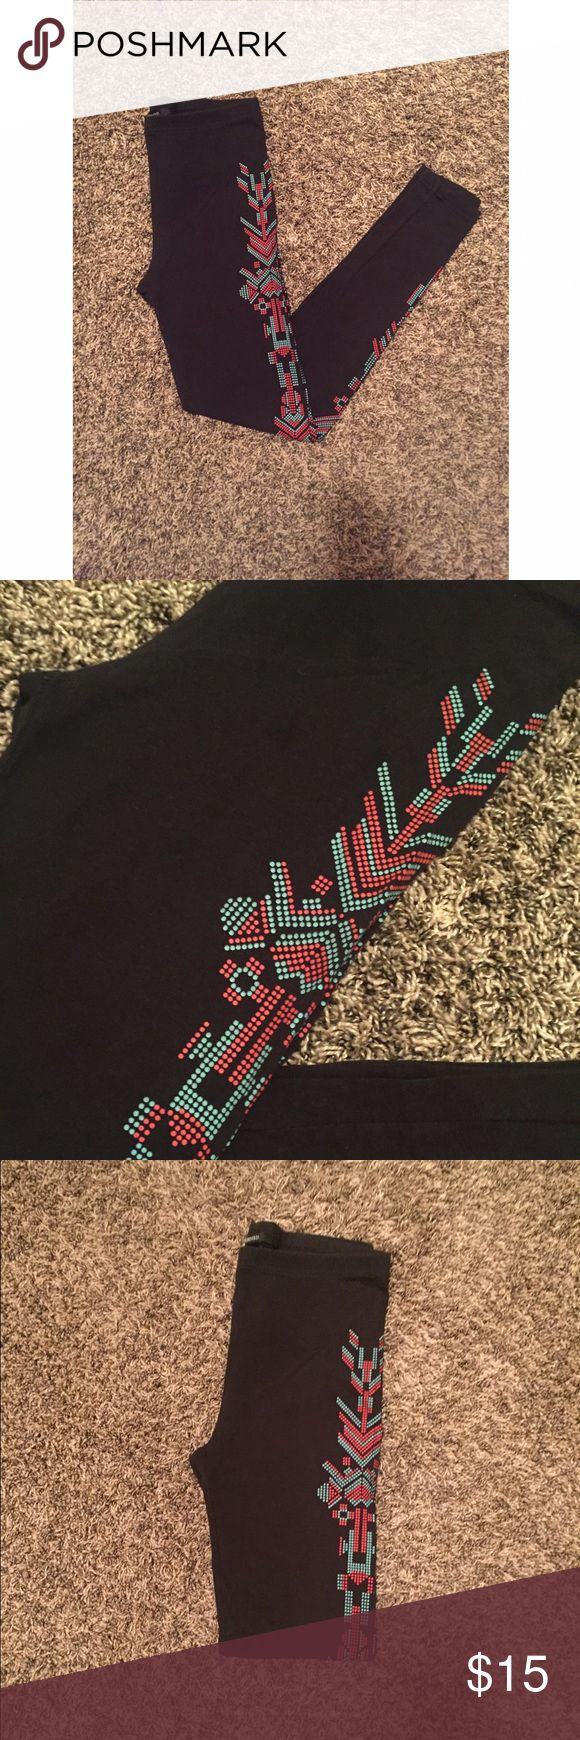 Forever 21 Geometric Aztec Print Leggings These are leggings from Forever 21. They are black and have a geometric aztec design going down each leg. The pattern is teal and a coral red. These are a medium. Forever 21 Pants Leggings